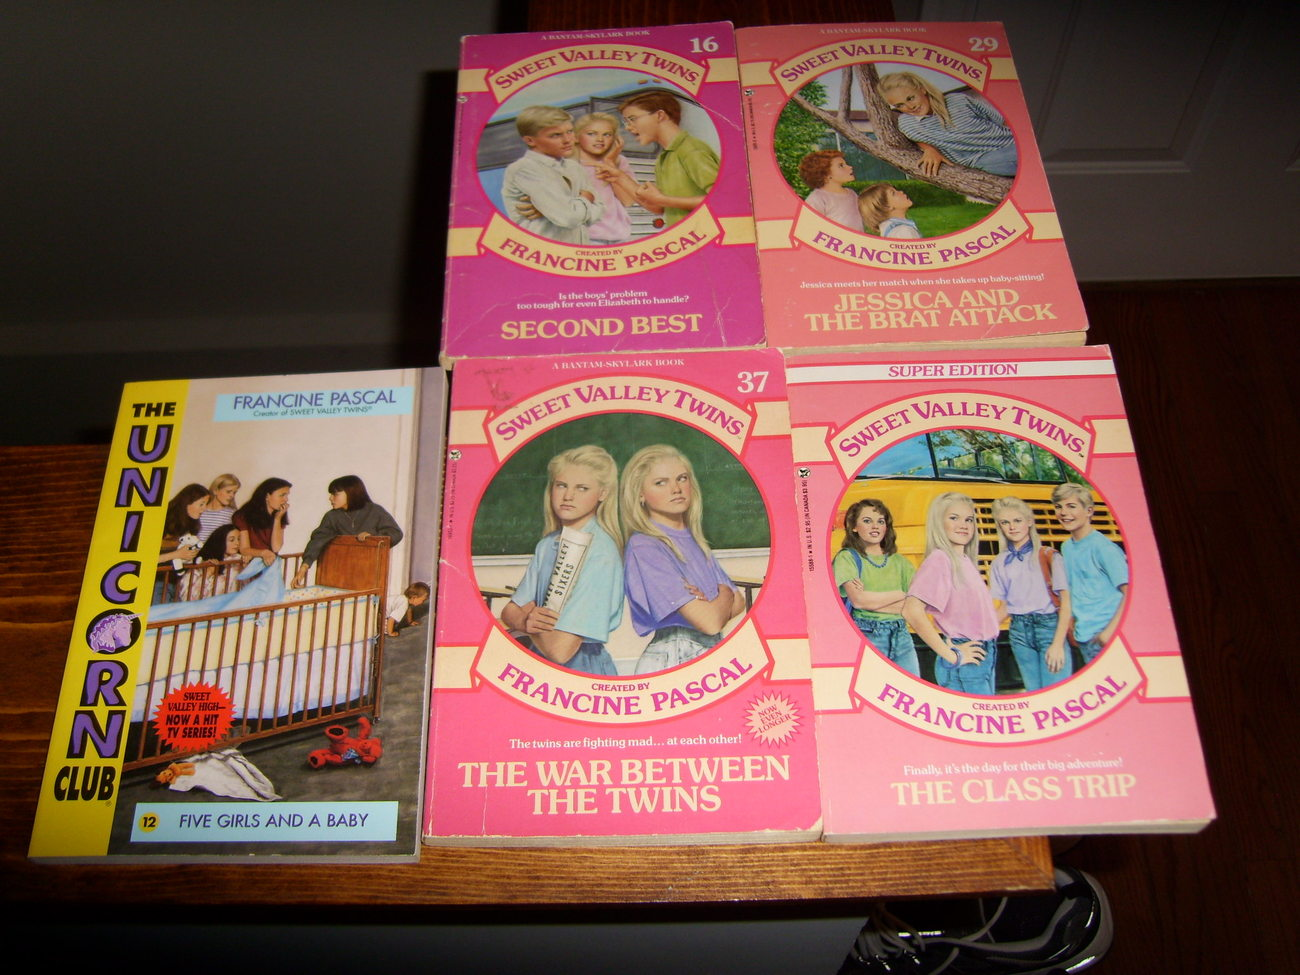 Sweet Valley Twins and The Unicorn club paperback book lot of 5 Francine Pascal